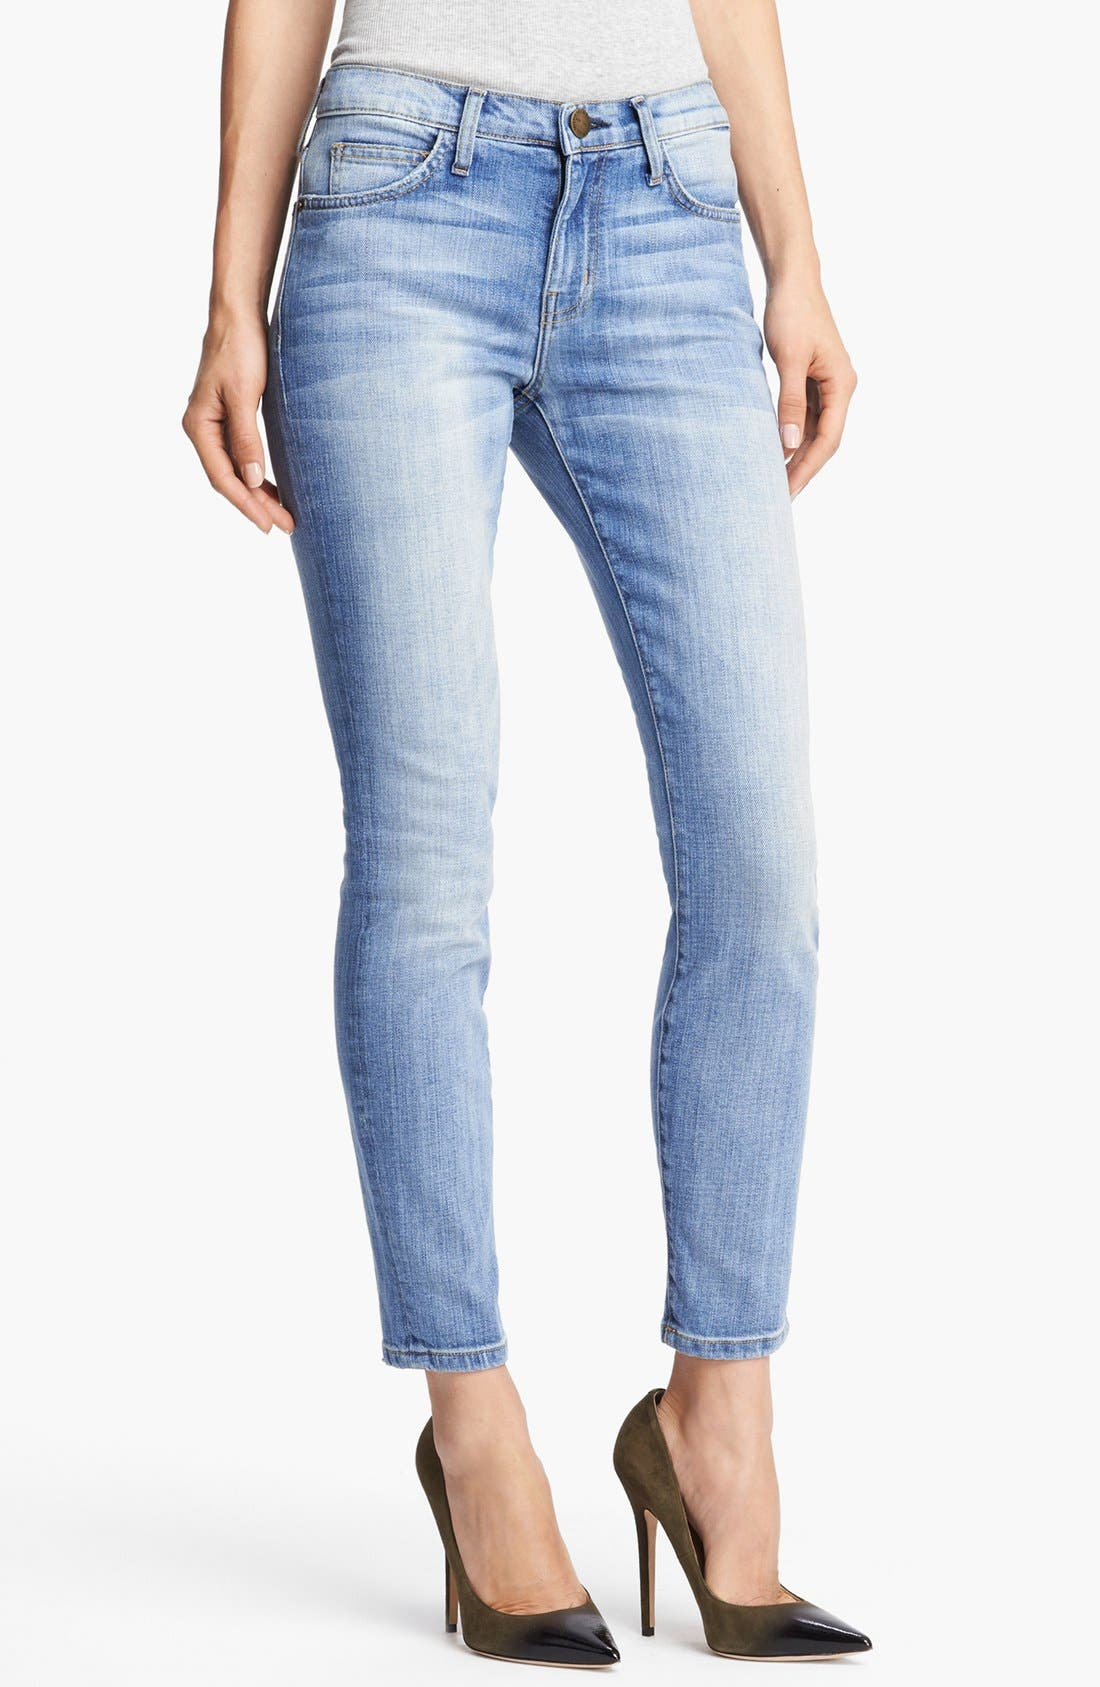 Main Image - Current/Elliott 'The Stiletto' Stretch Jeans